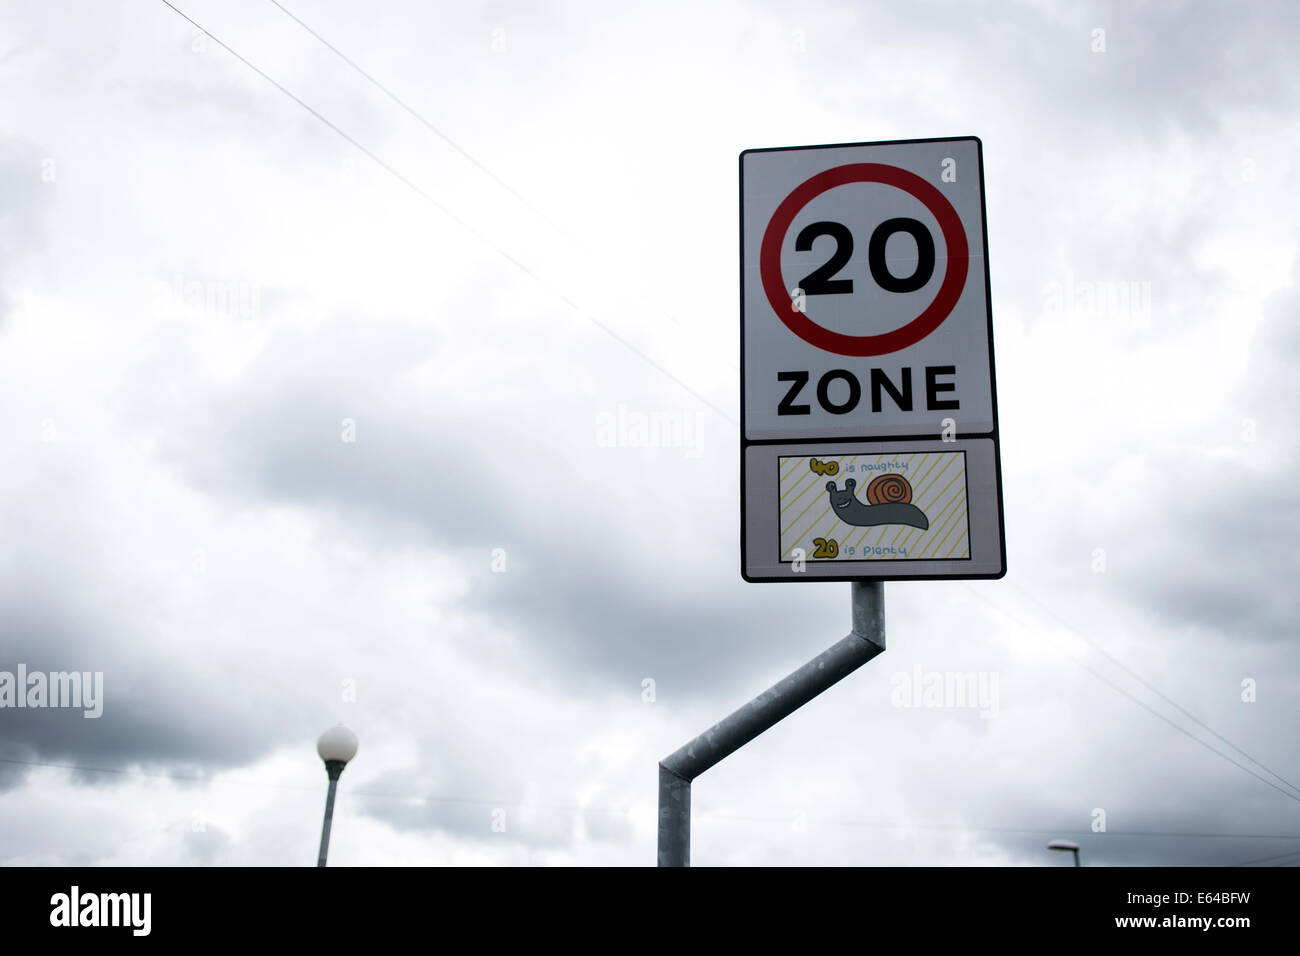 20 miles per hour road sign in Manchester - Stock Image